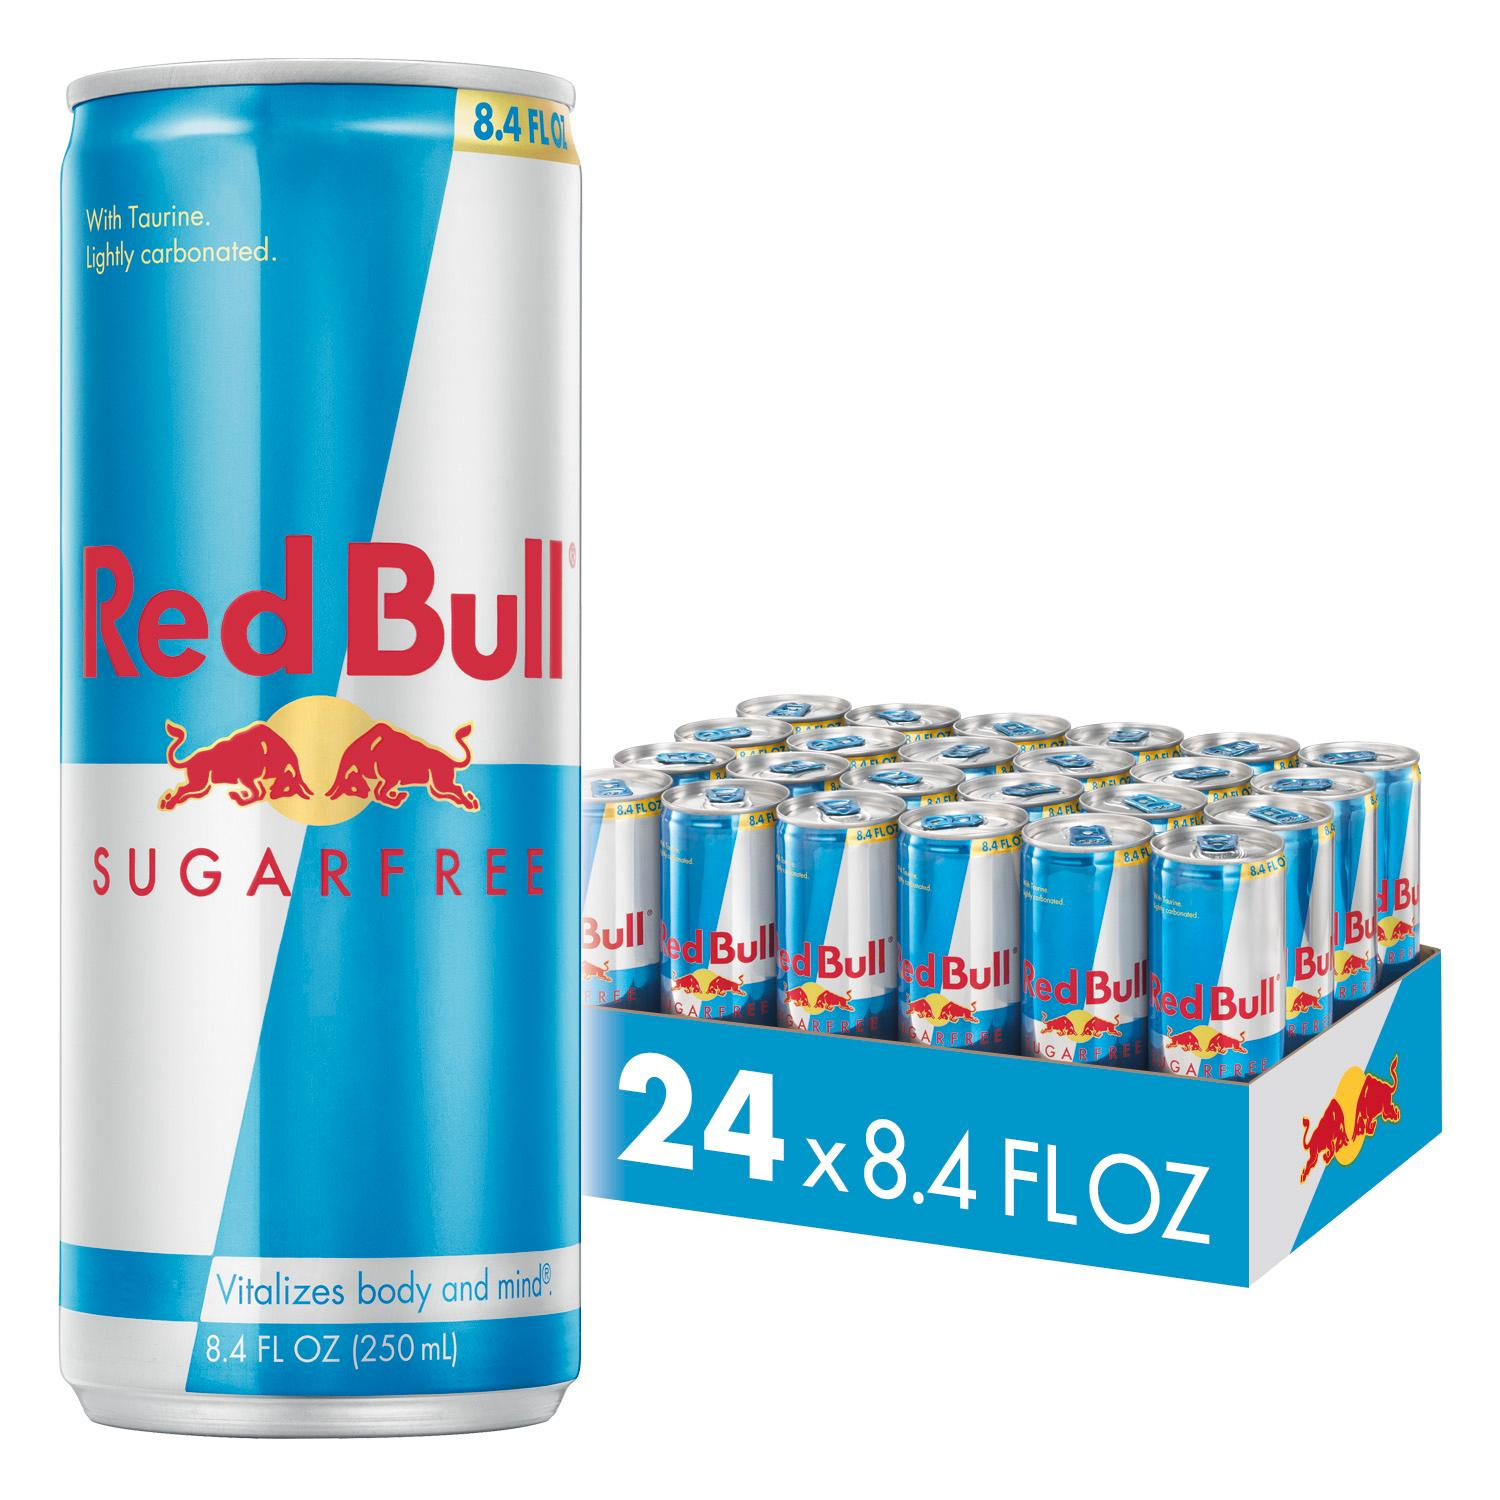 (24 Cans) Red Bull Sugarfree Energy Drink, 8.4 Fl Oz